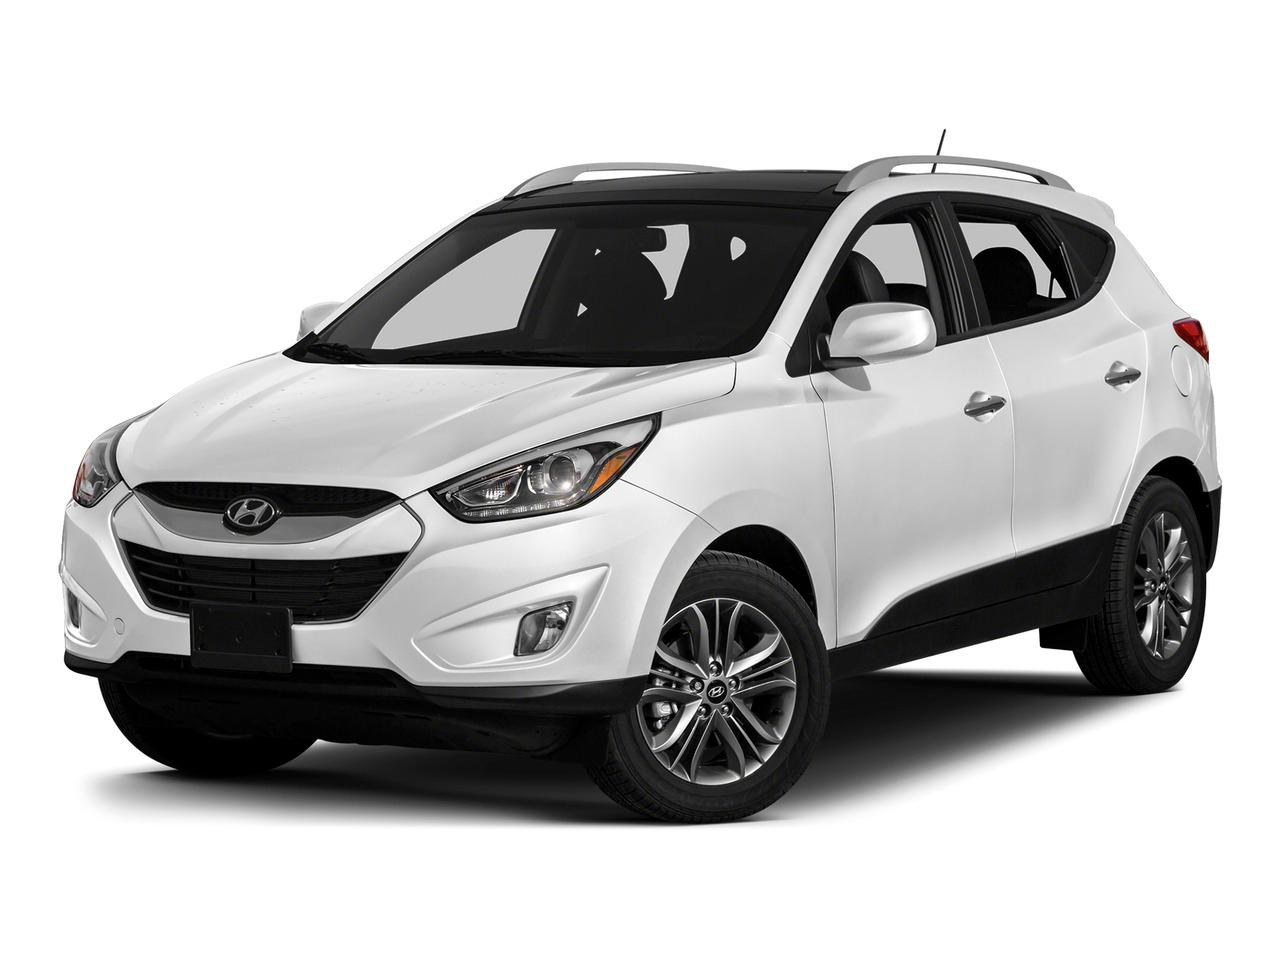 2015 Hyundai Tucson Vehicle Photo in Washington, NJ 07882